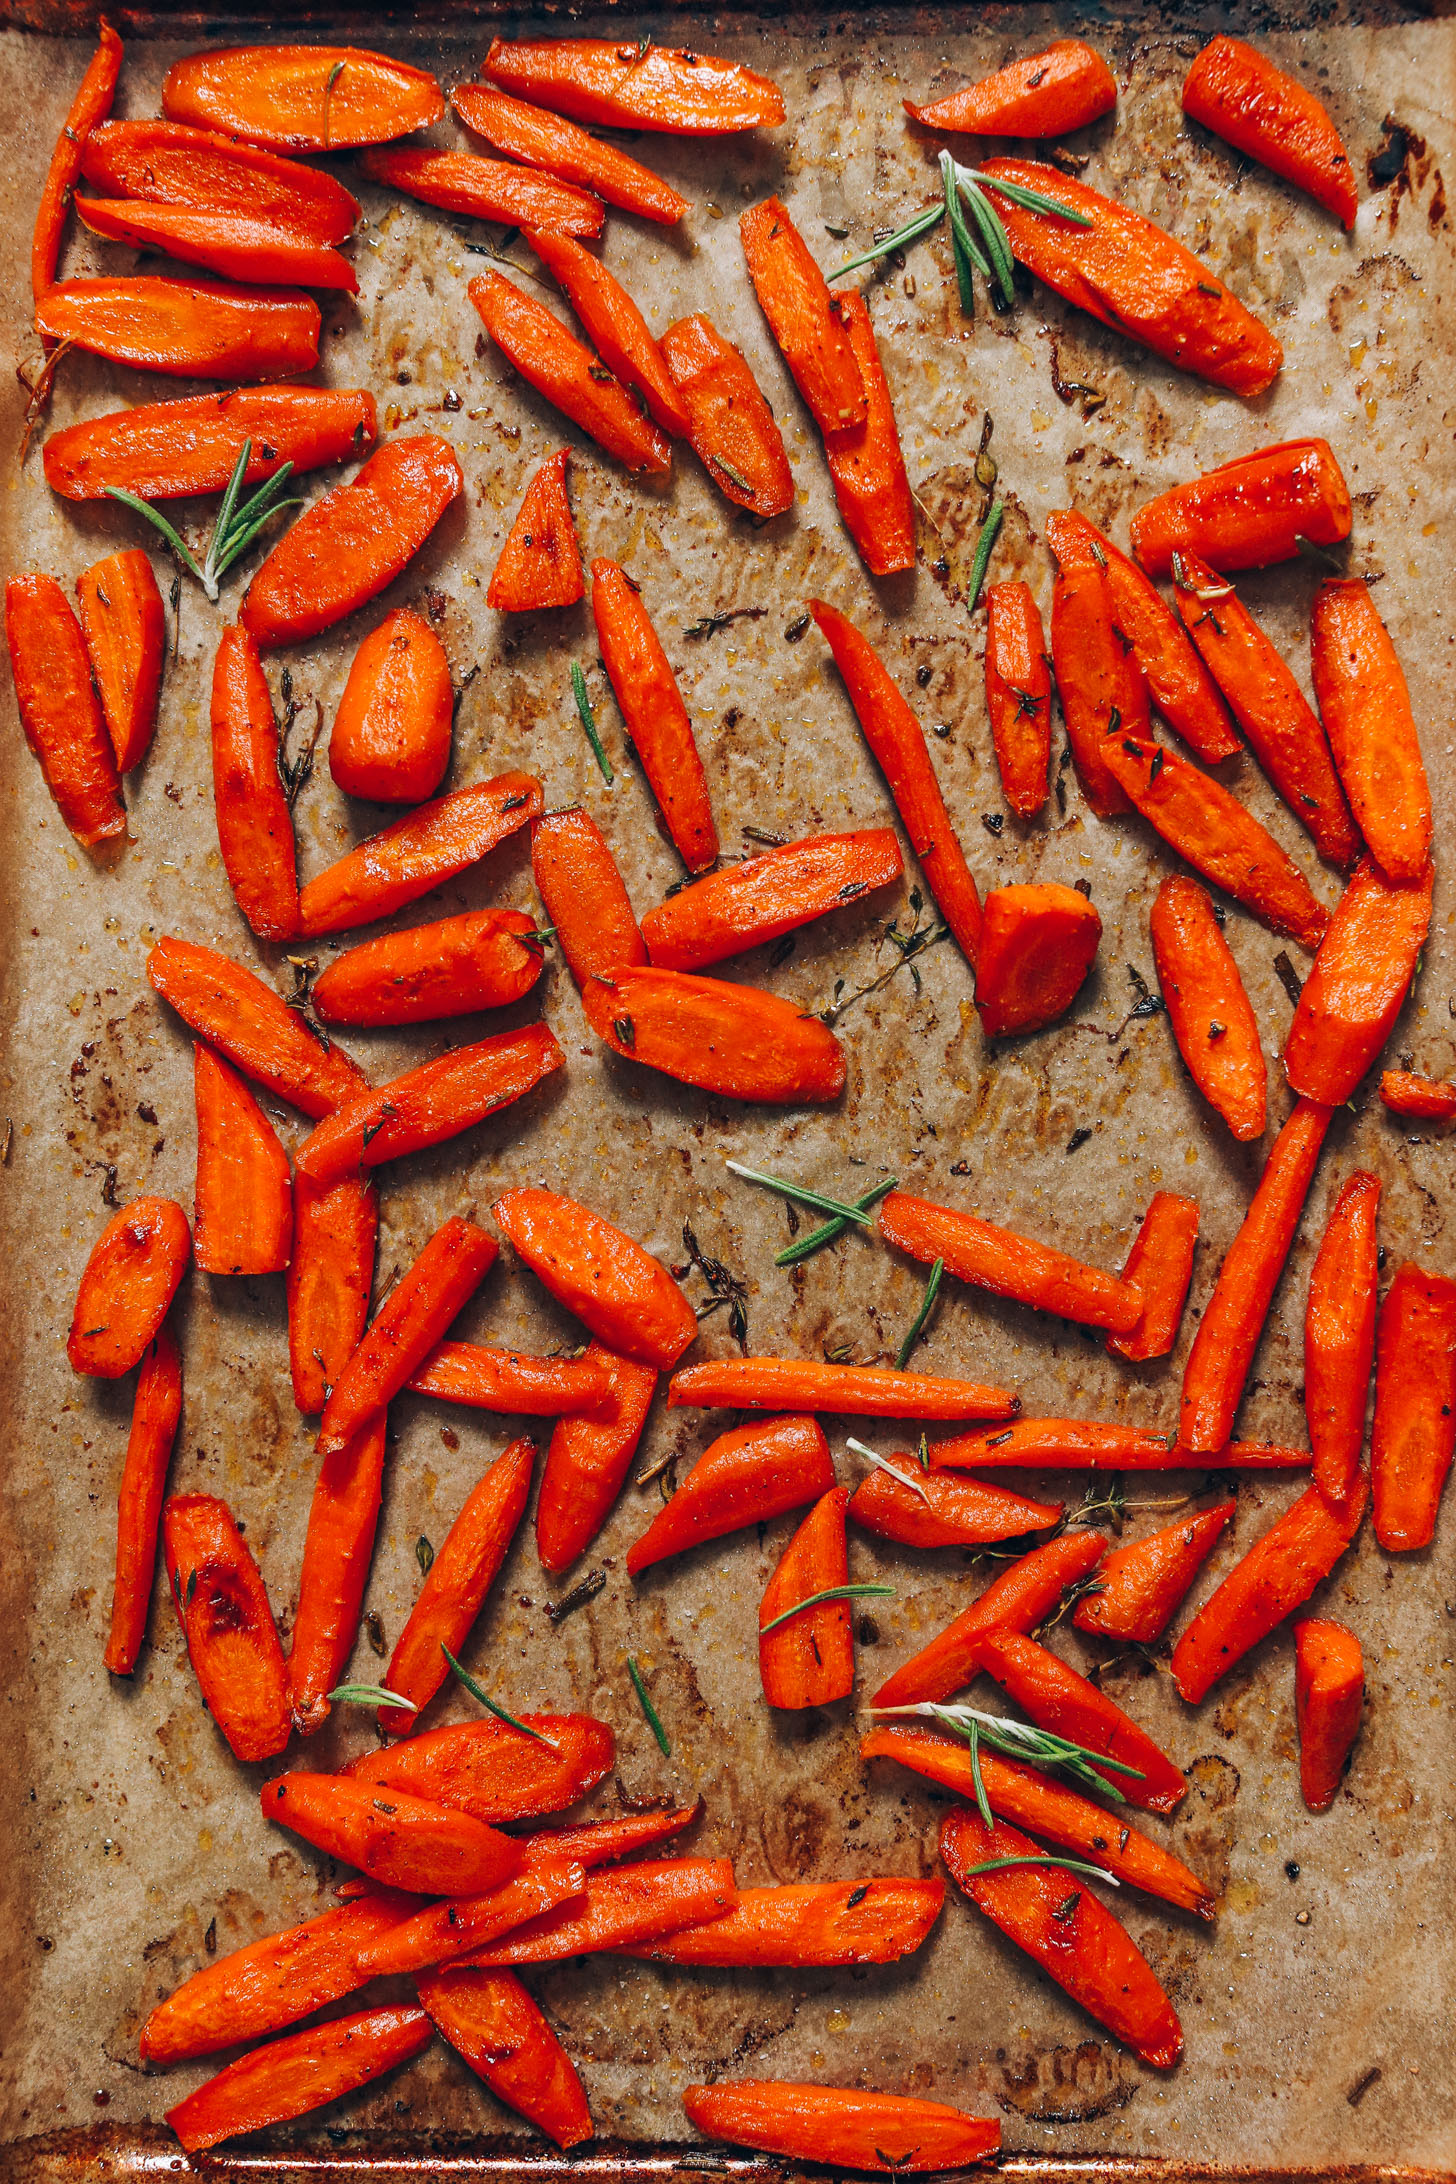 Baking sheet of roasted carrots with rosemary and thyme